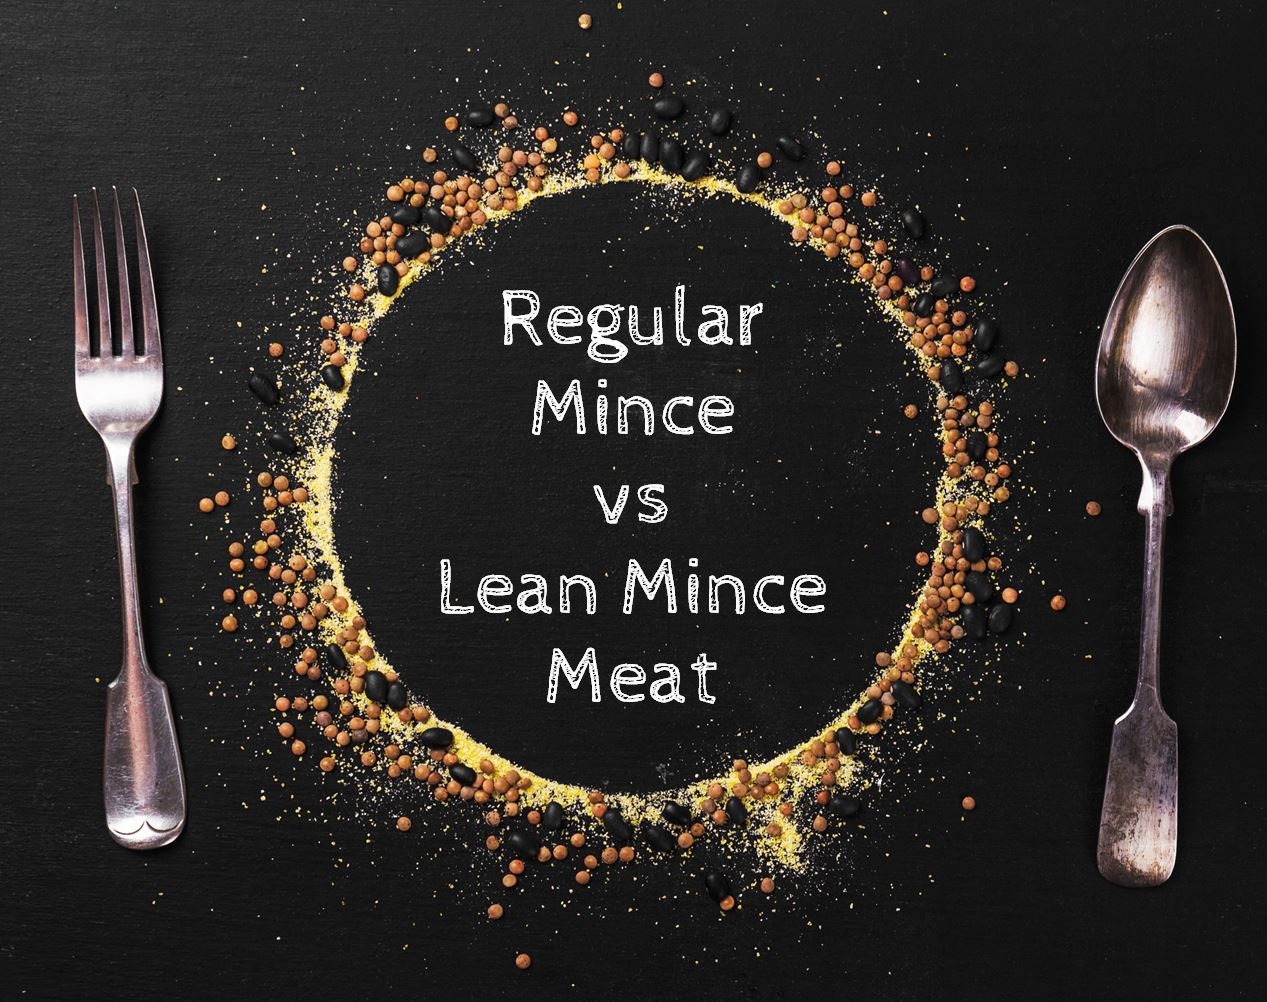 Regular mince vs lean mince meat